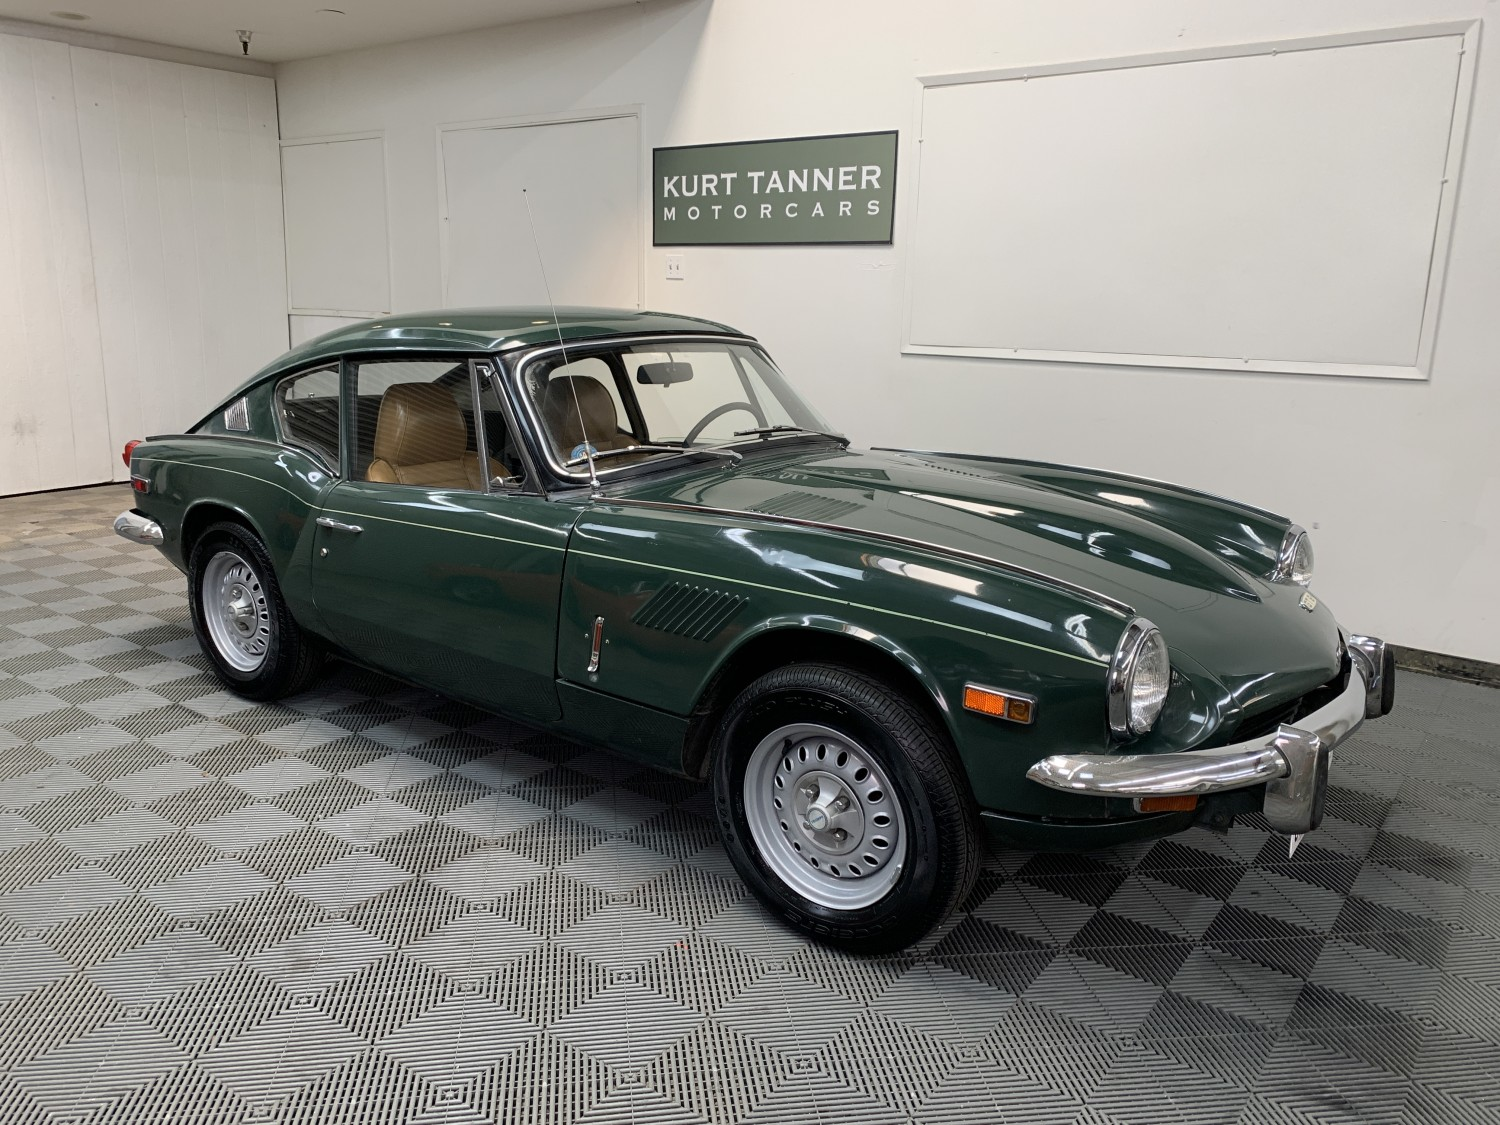 1970 TRIUMPH GT6+ SPORTS COUPE. LAUREL GREEN WITH BLACK TRIM, BEIGE LEATHER SEATS. 4-SPEED, STEEL WHEELS. WELL-PRESERVED CA CAR WITH 80% ORIGINAL PAINTWORK. GOOD DRIVER. SHOWS 46,428 MILES.